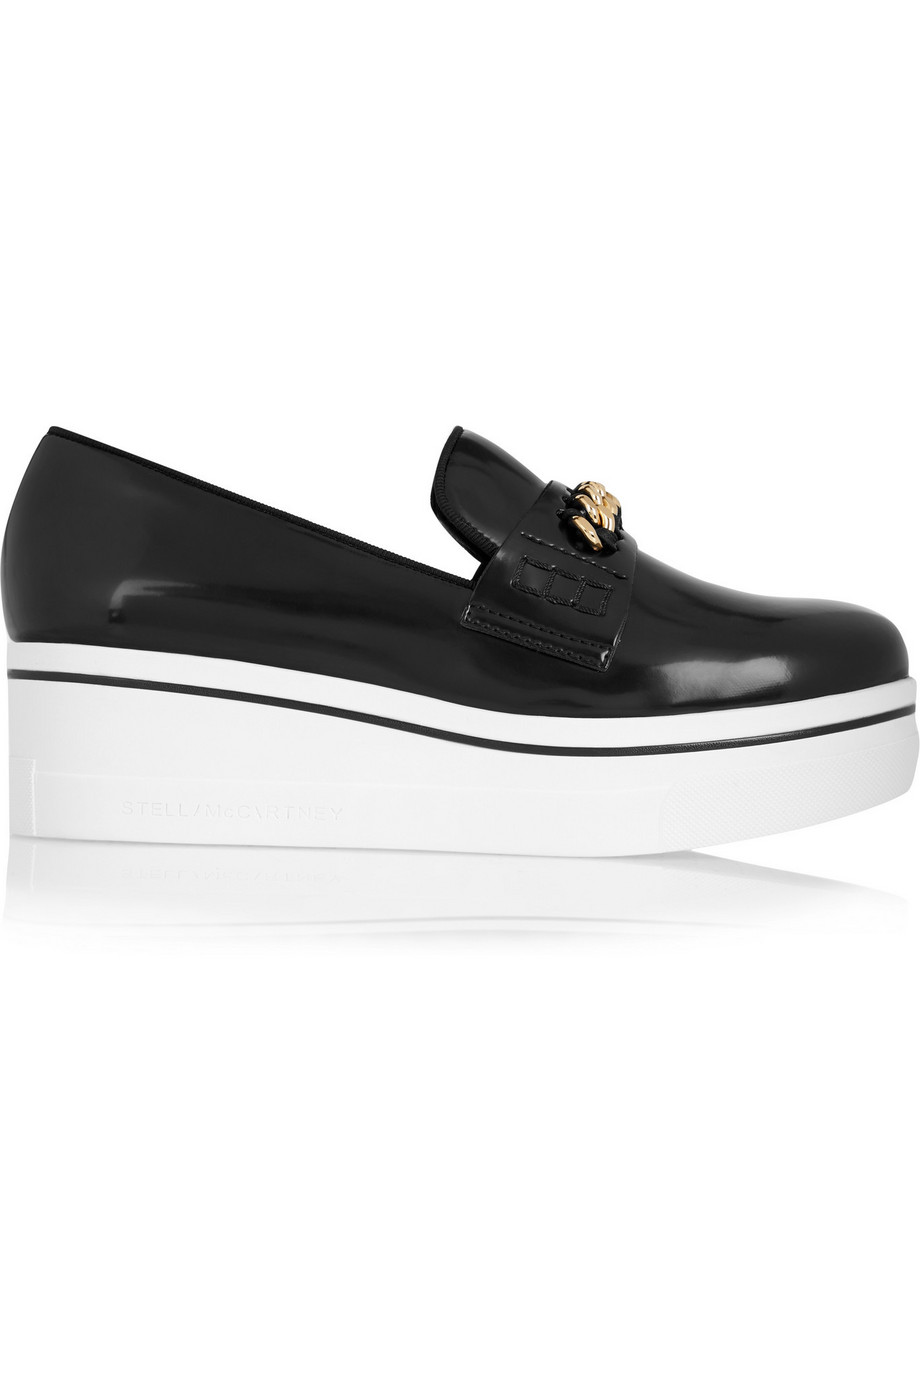 Stella Mccartney Faux Leather Platform Loafers, Black, Women's US Size: 7.5, Size: 38